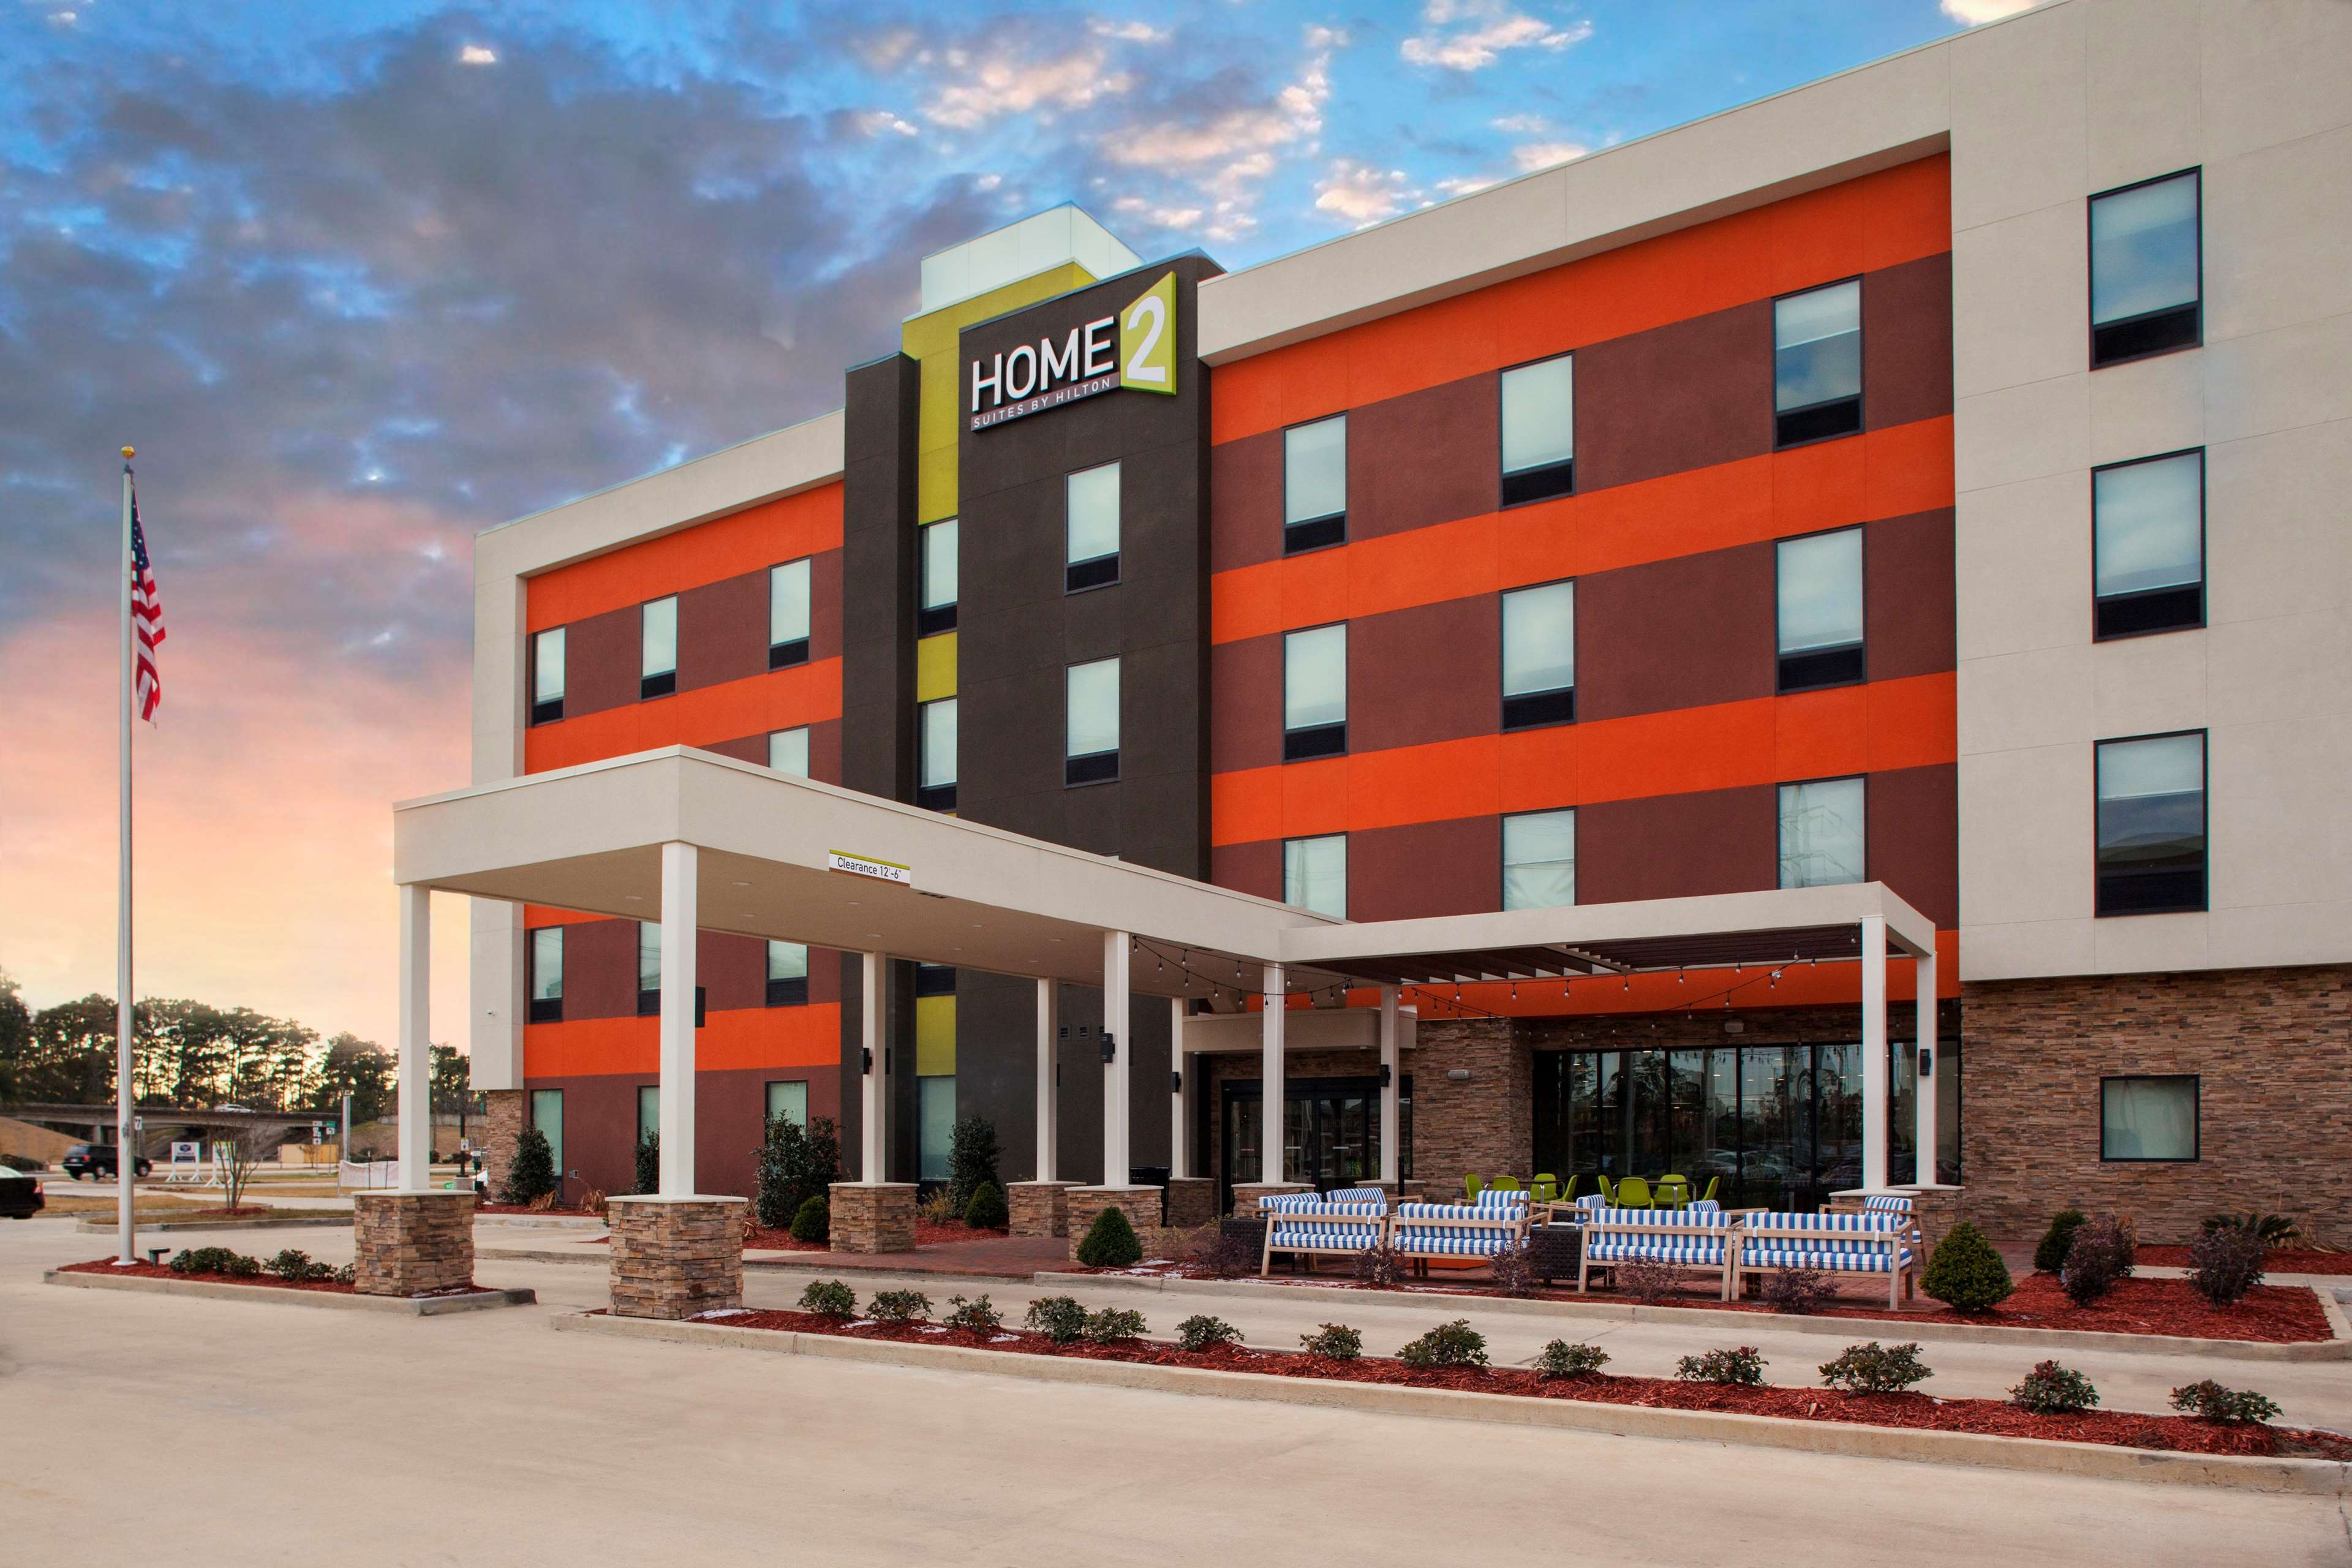 Home2 Suites by Hilton Lake Charles image 0